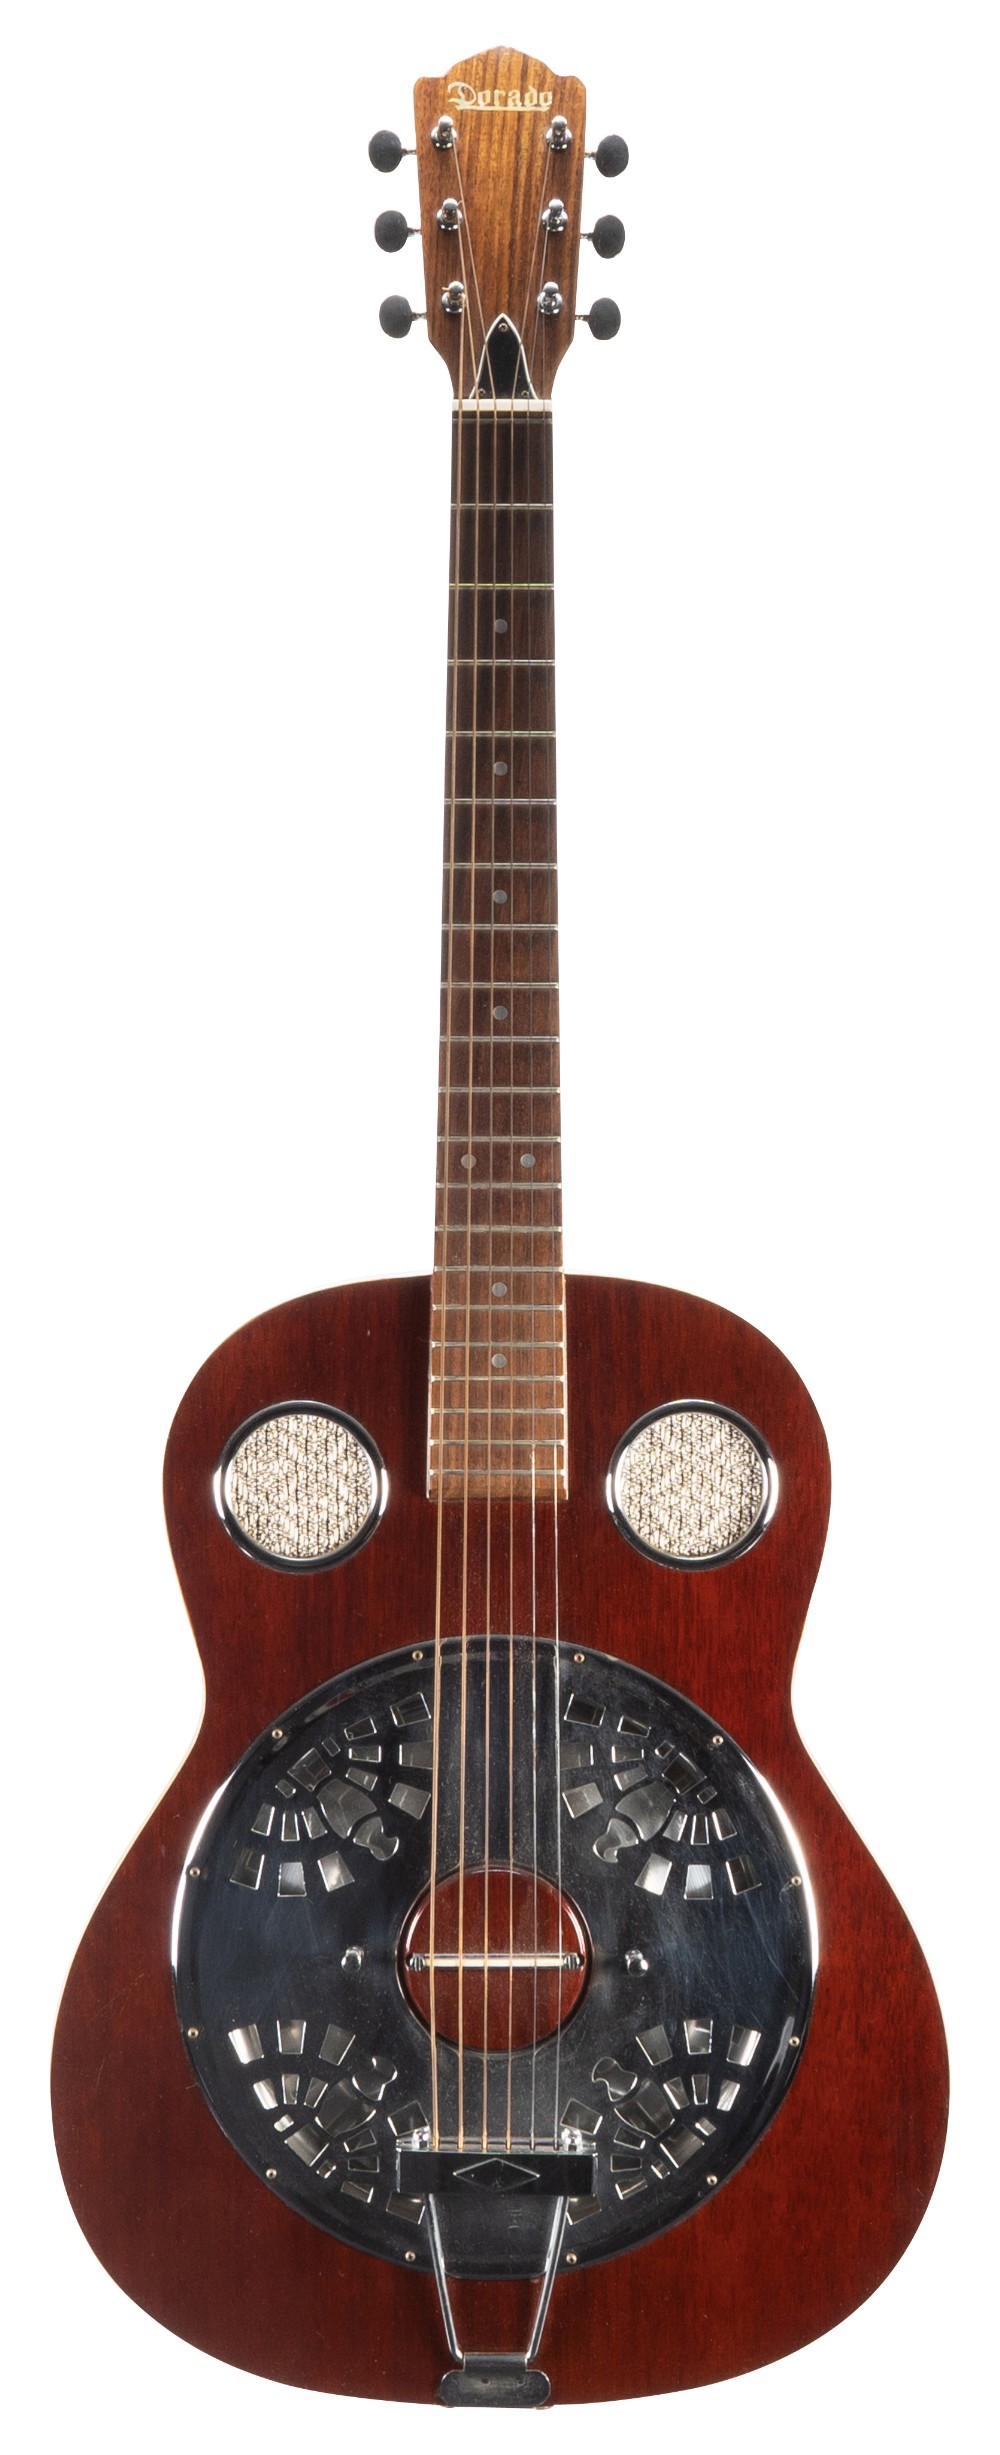 1970s Dorado resonator guitar, made in Japan; Finish: stained mahogany, blemishes to the back and